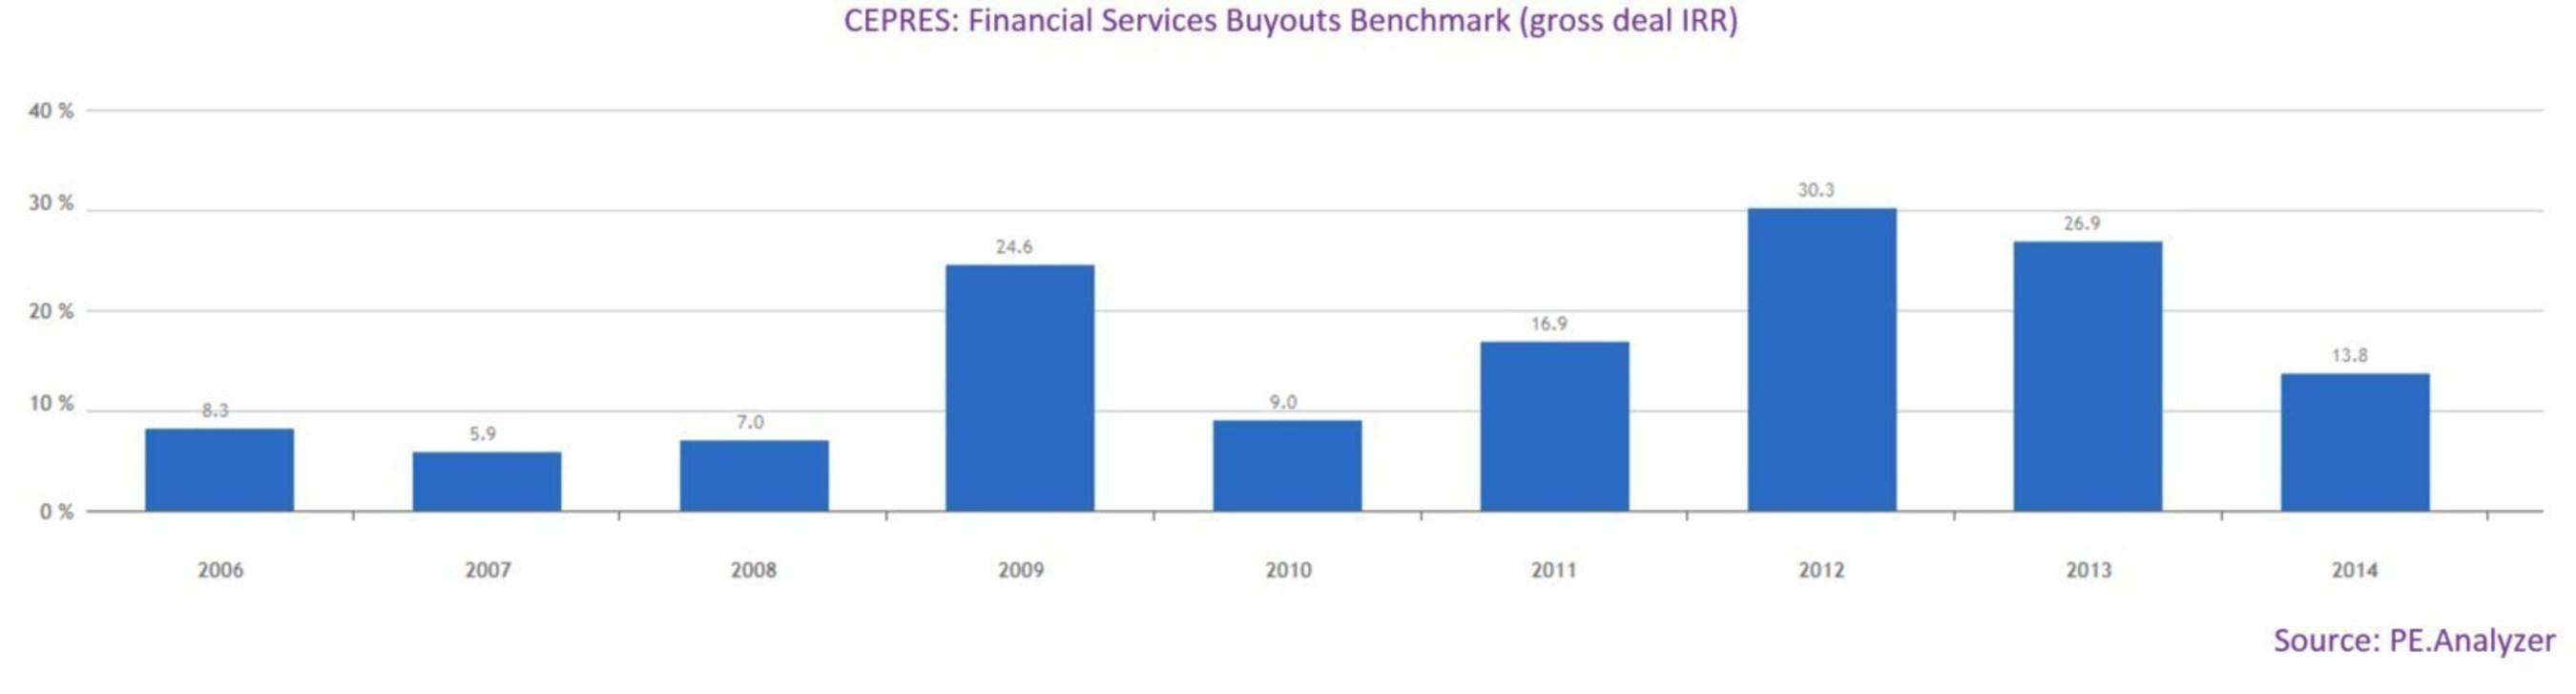 CEPRES: Financial Services Buyouts Benchmark